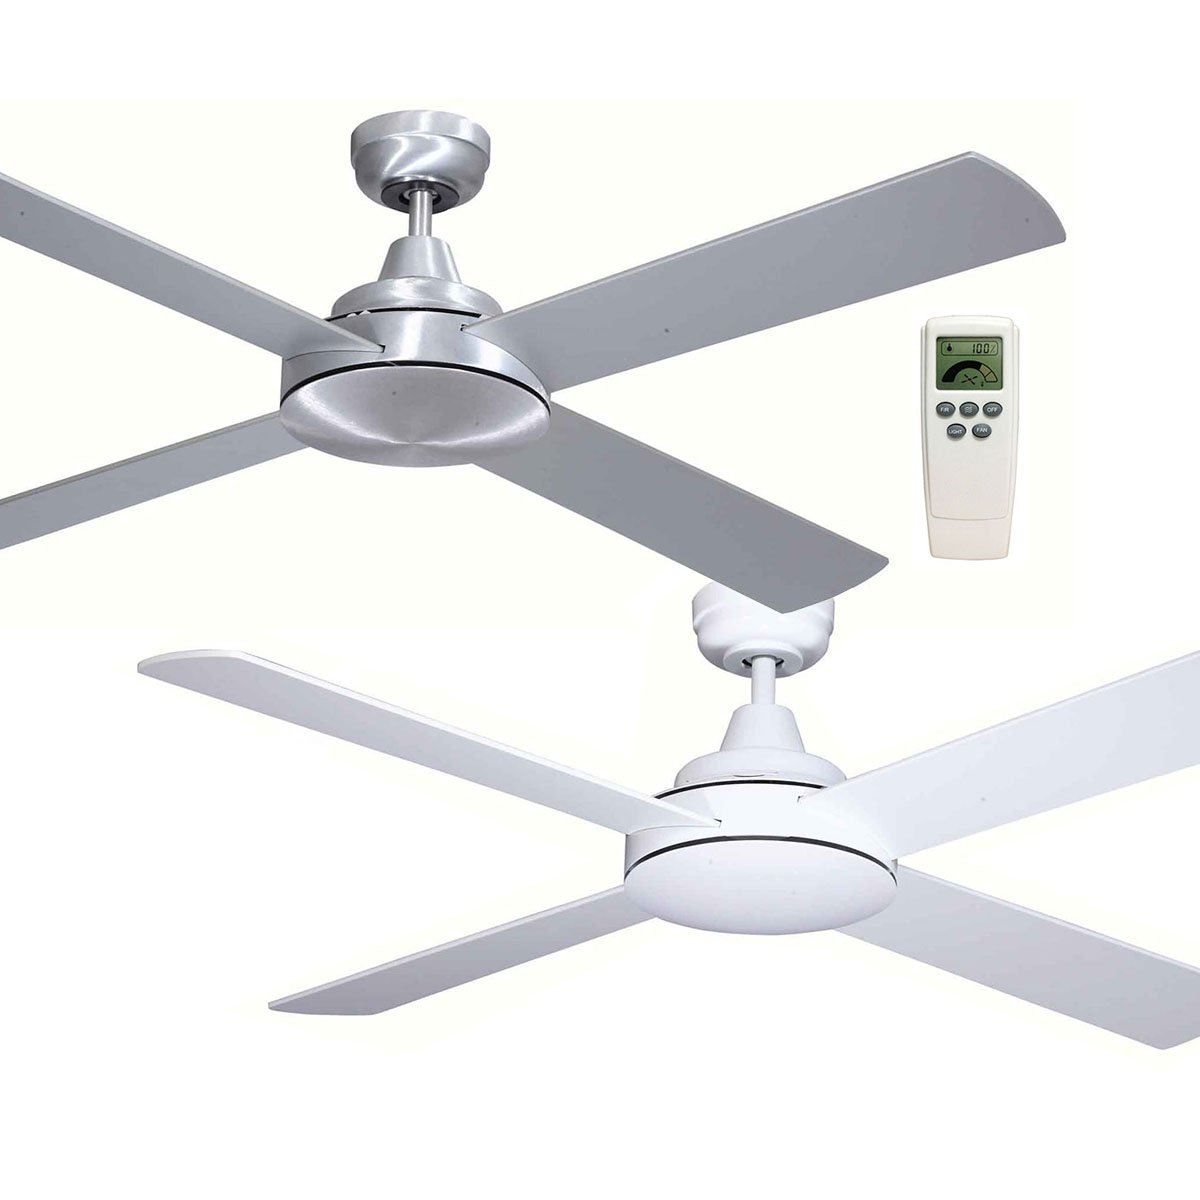 Grange dc ceiling fan with led light : Grange dc ceiling fan with remote f co